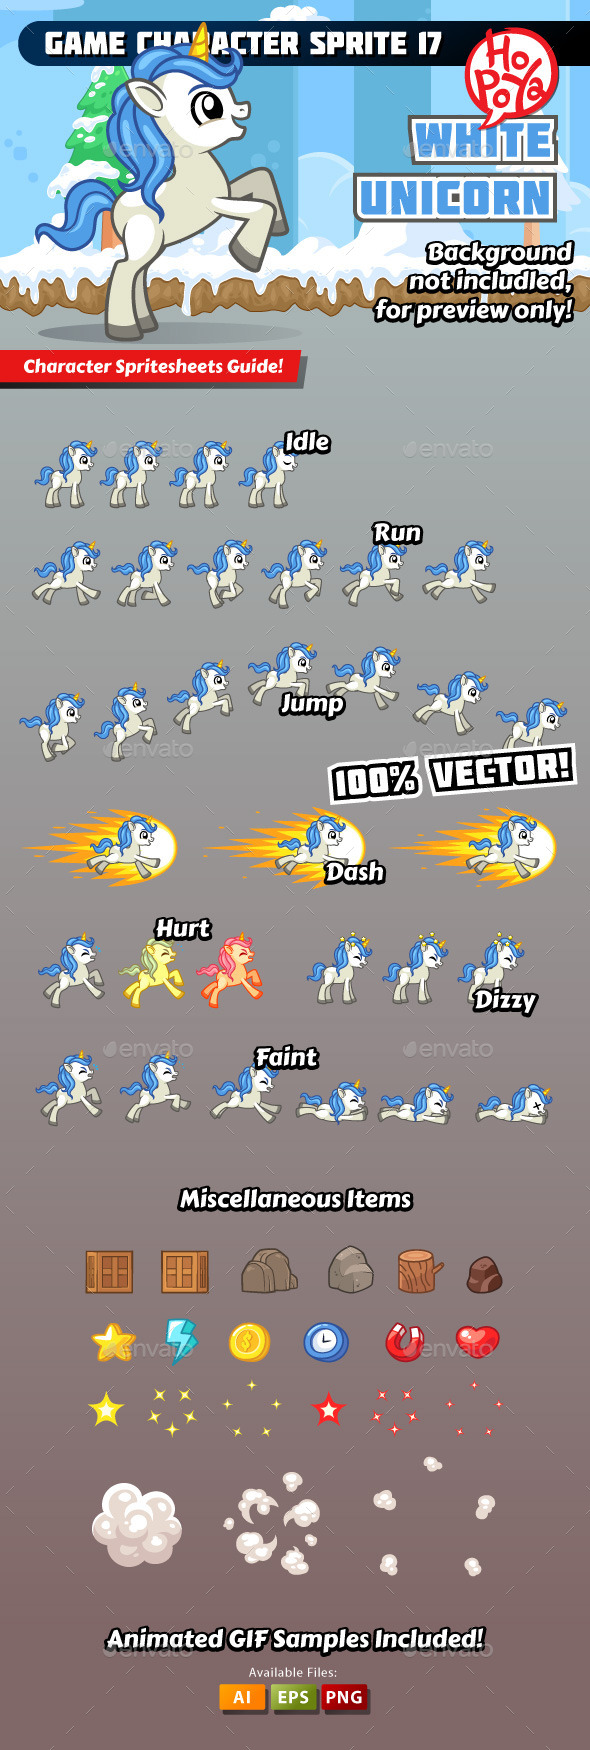 GraphicRiver Game Character Sprite 17 11864141